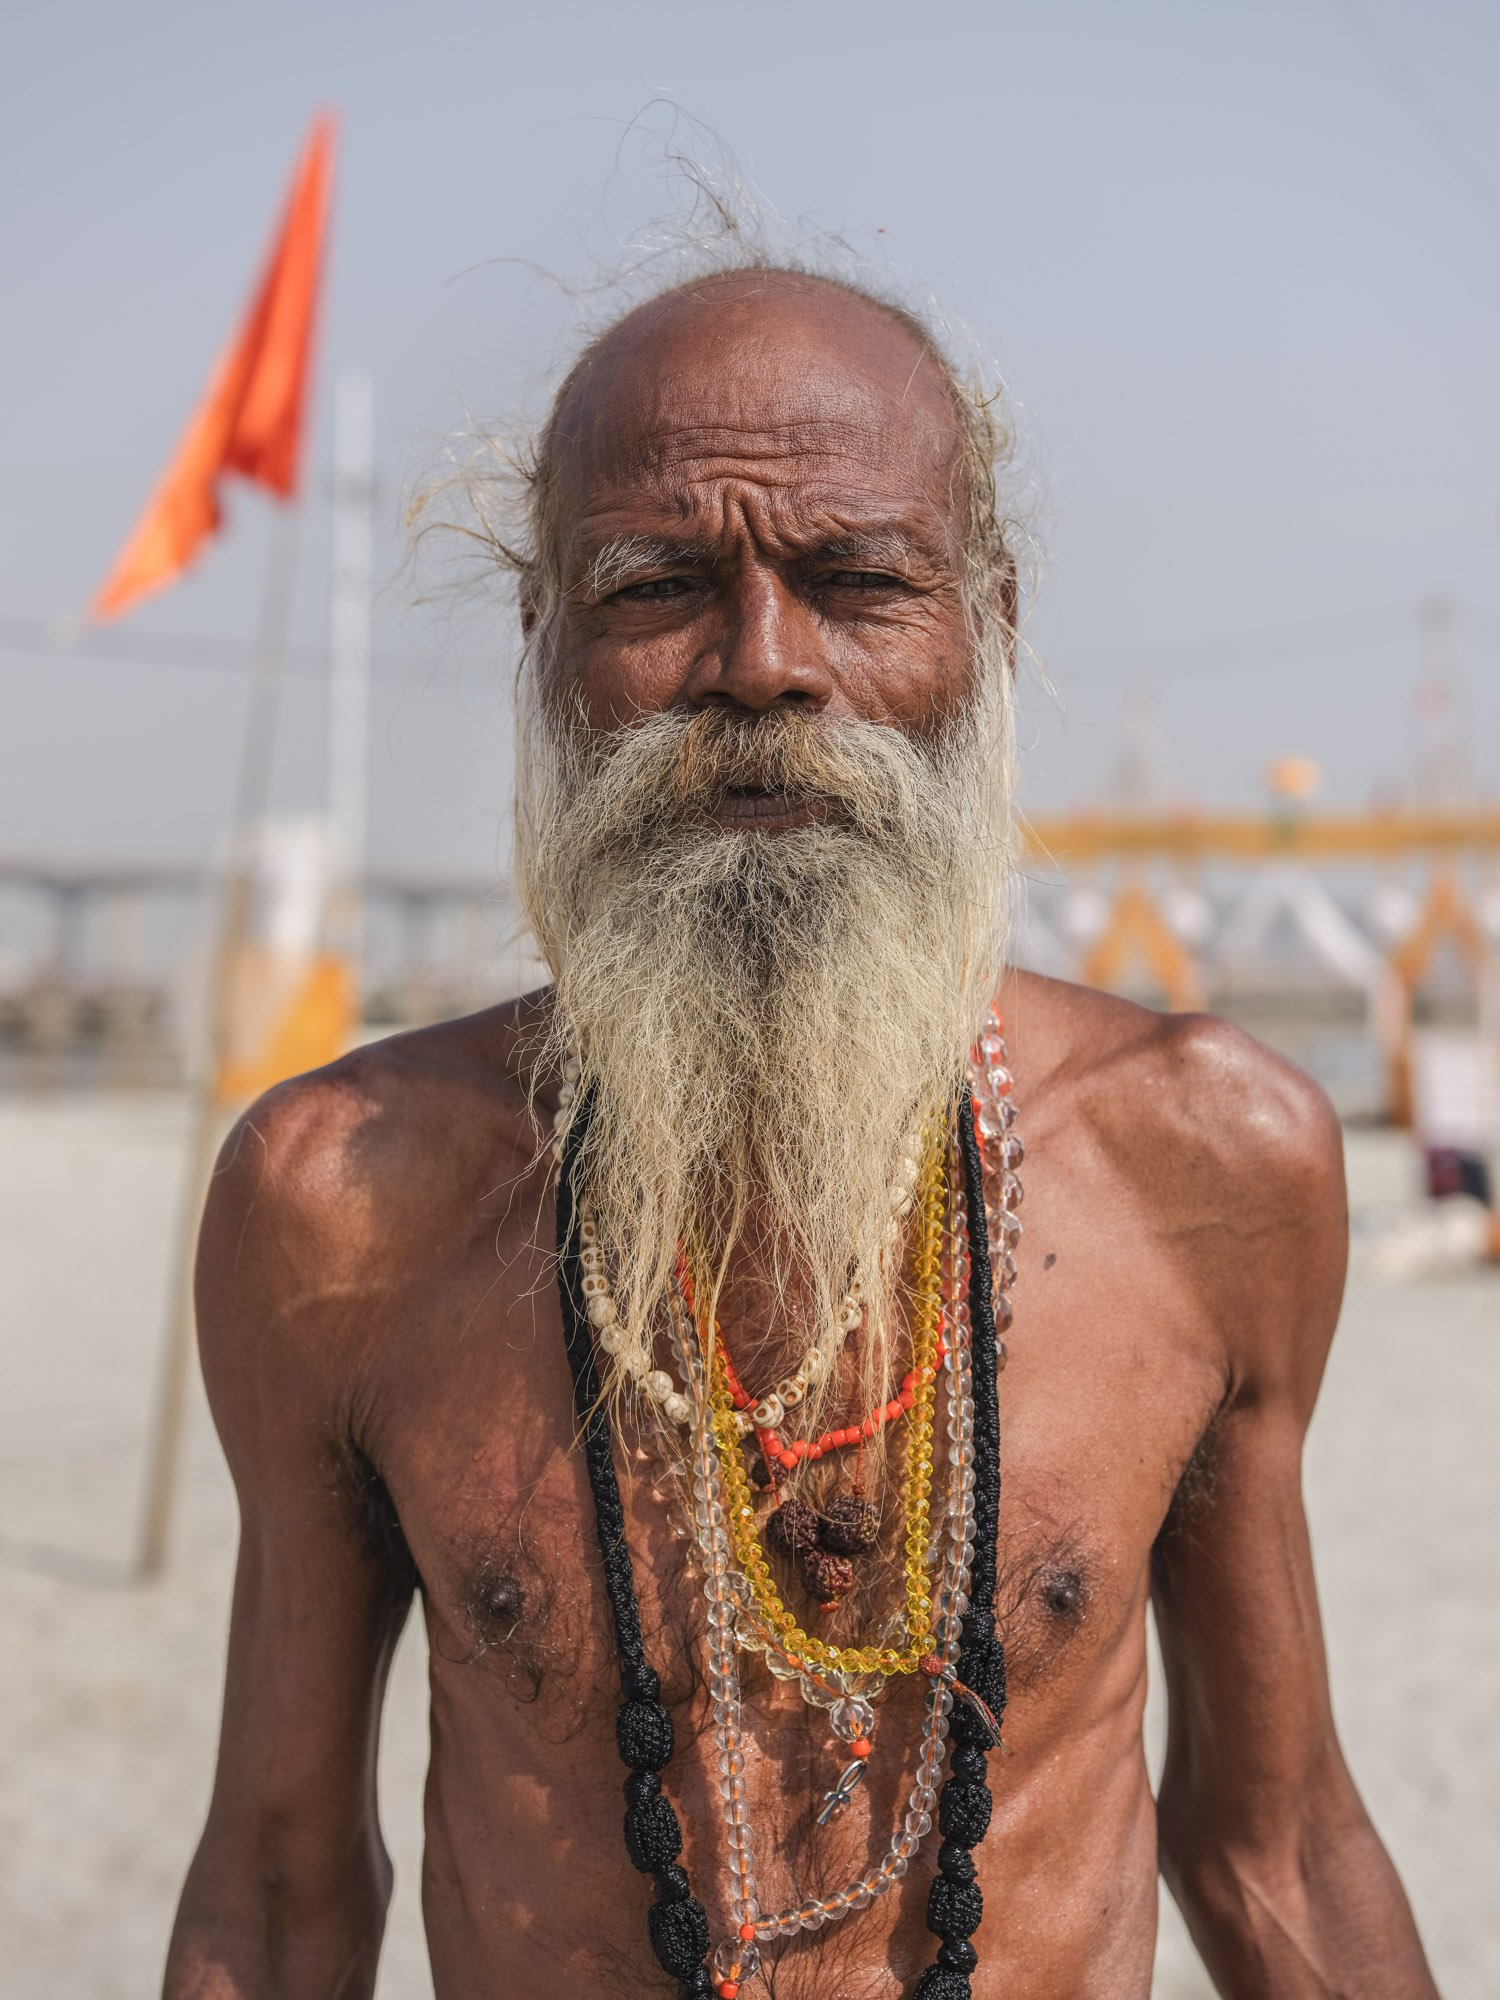 old man portrait pilgrims Kumbh mela 2019 India Allahabad Prayagraj Ardh hindu religious Festival event rivers photographer jose jeuland photography